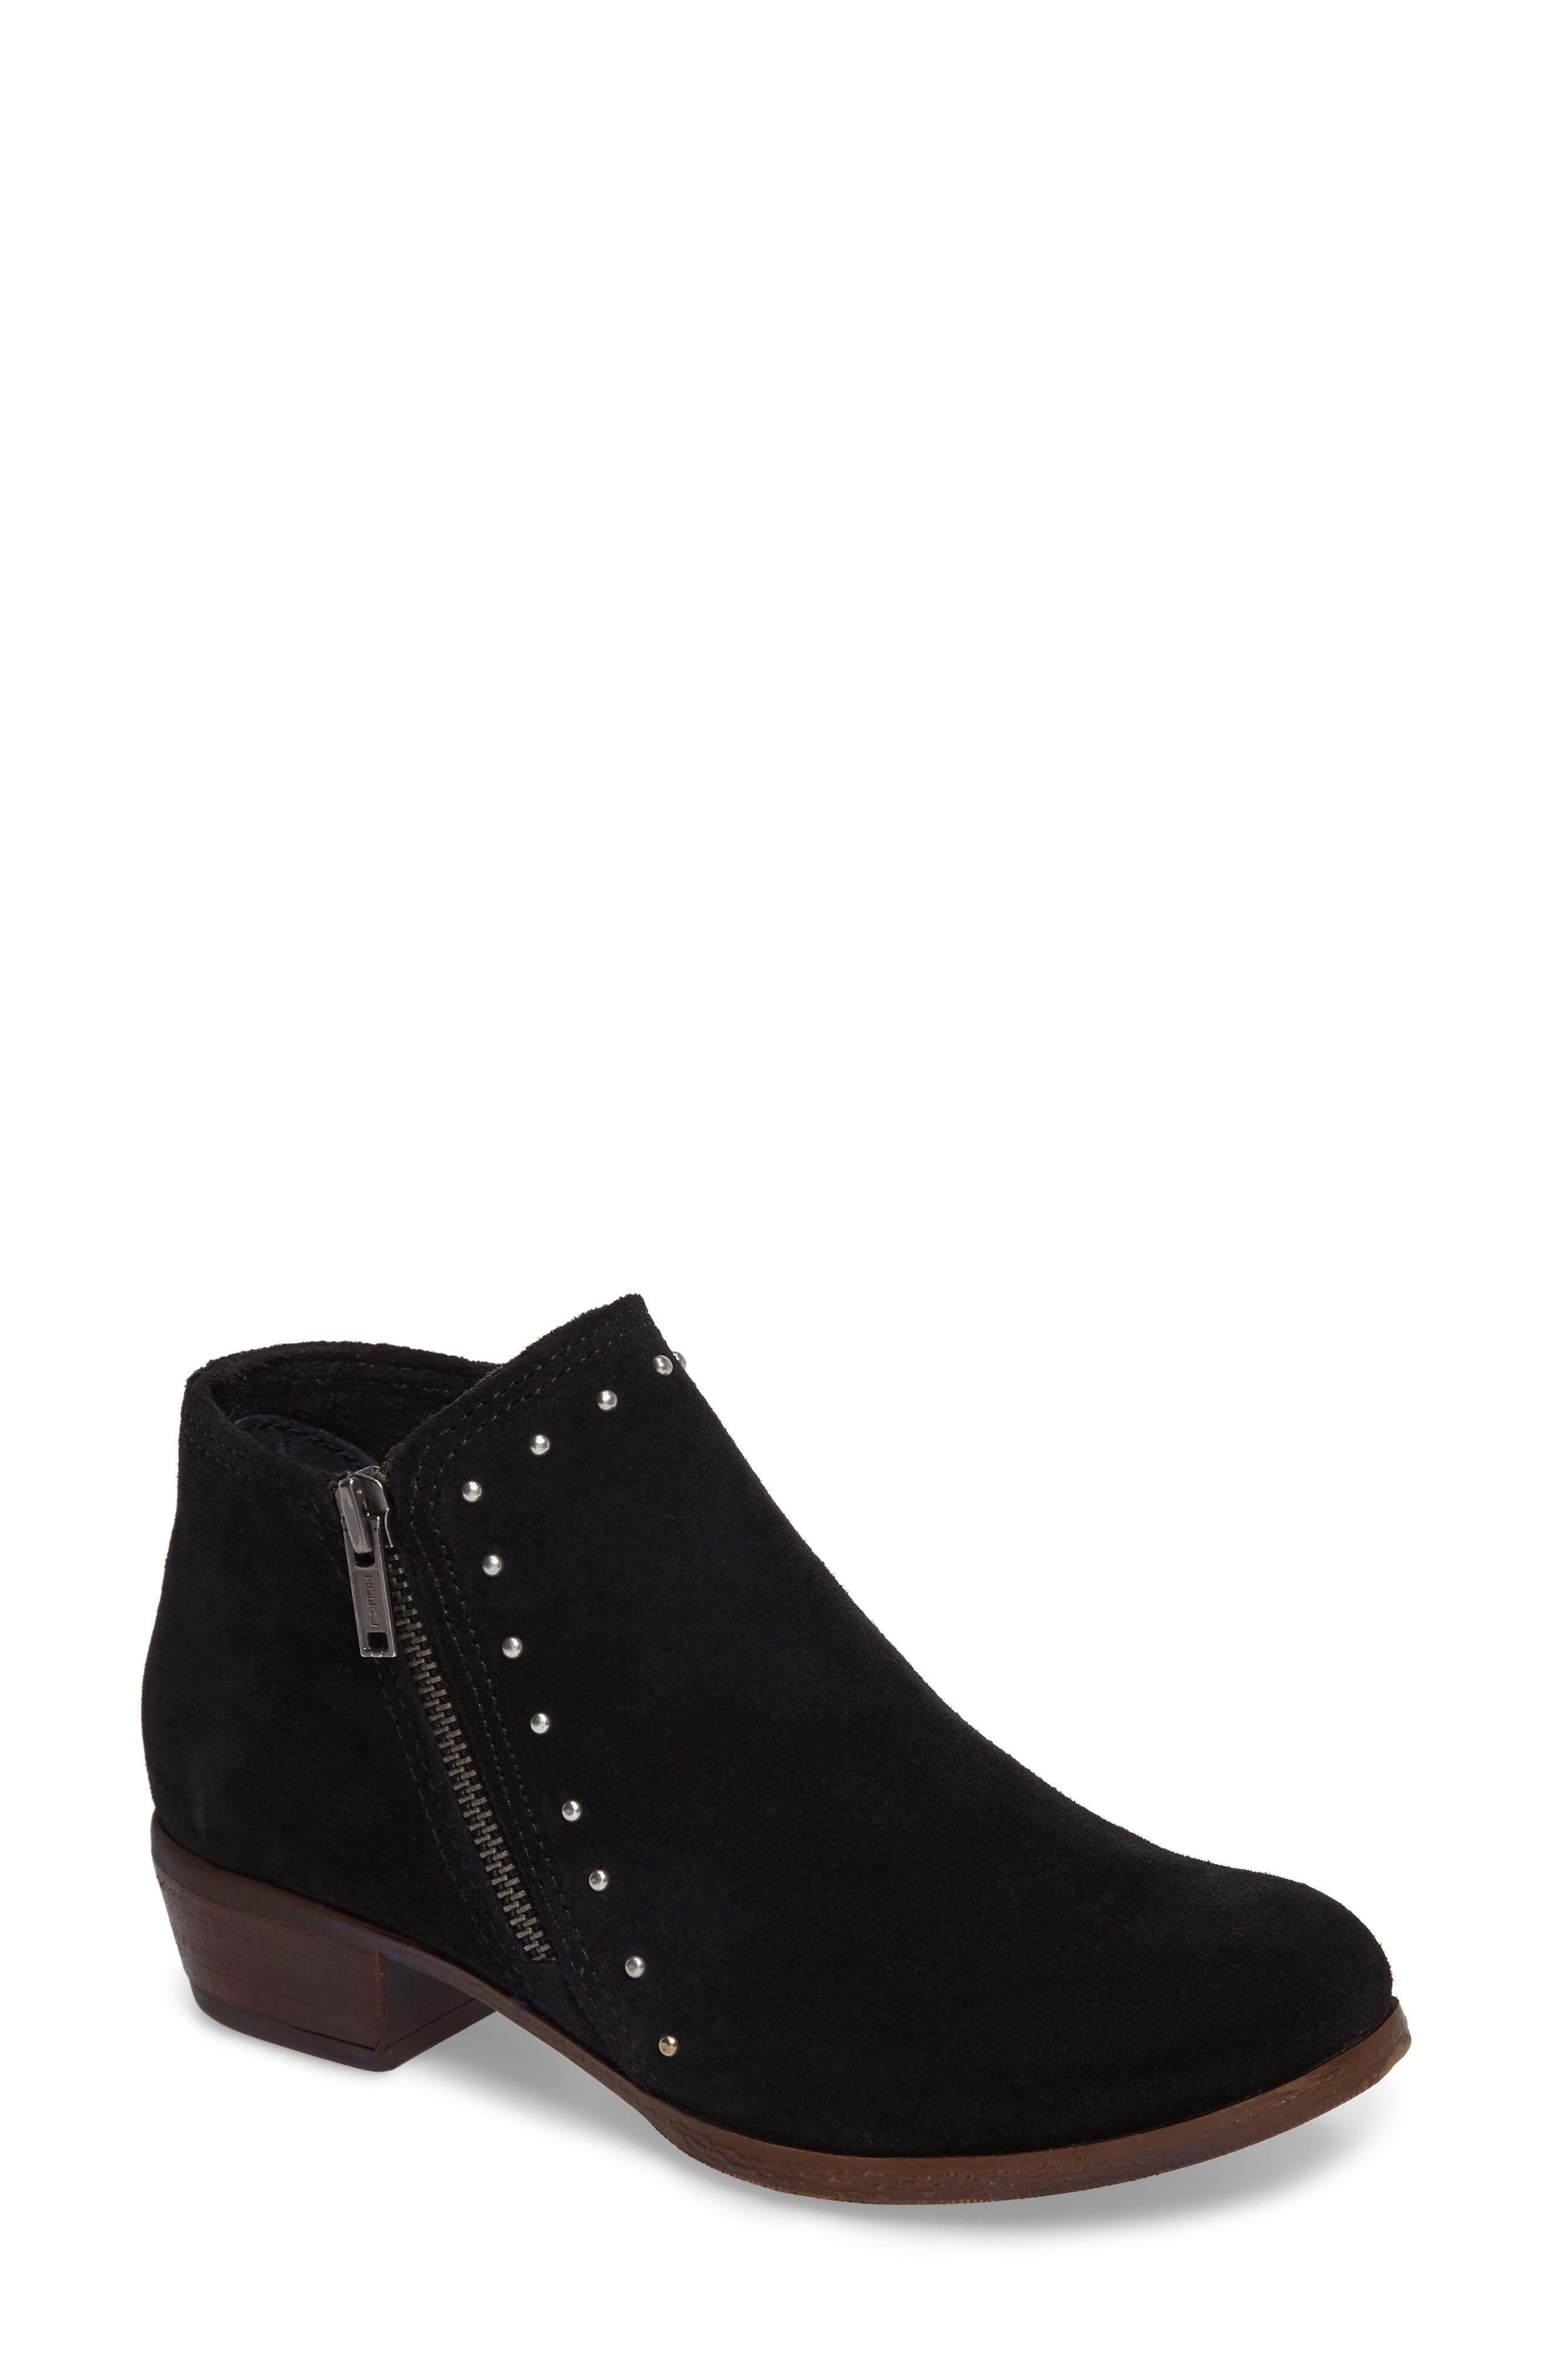 Brie Studded Bootie,                             Main thumbnail 1, color,                             BLACK